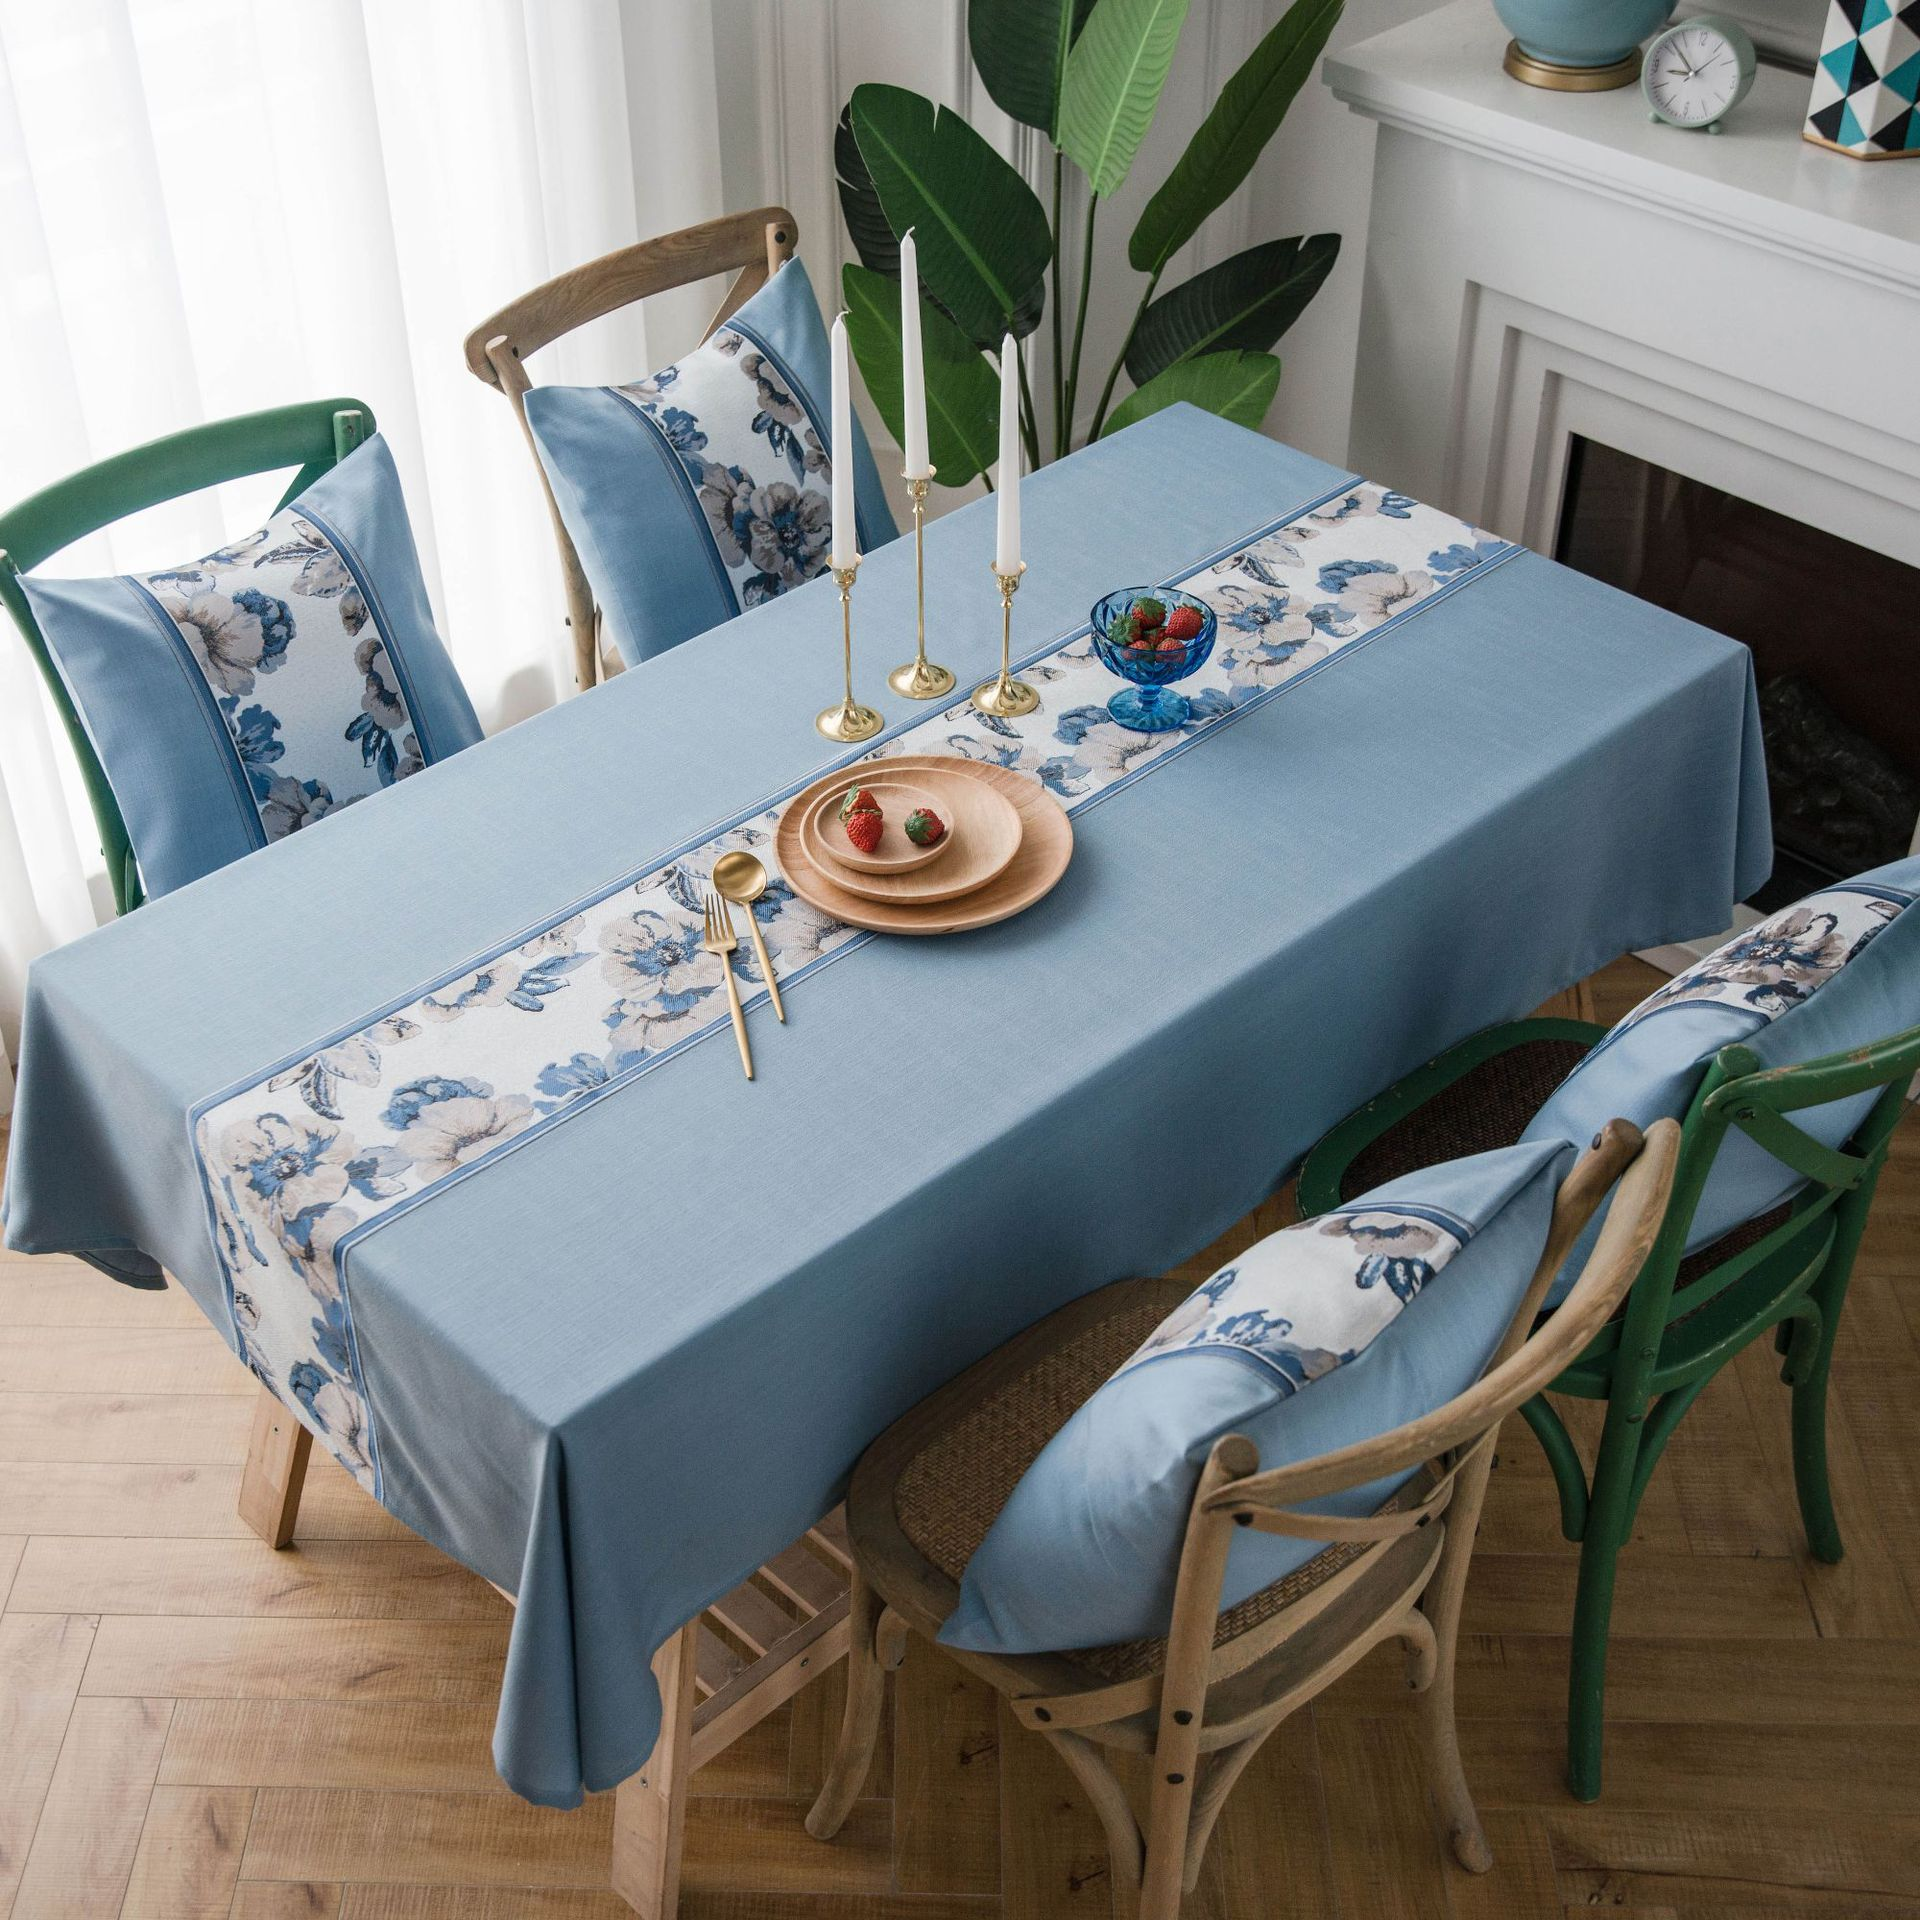 Retro Waterproof Floral Lining Tablecloth for Dining Tables